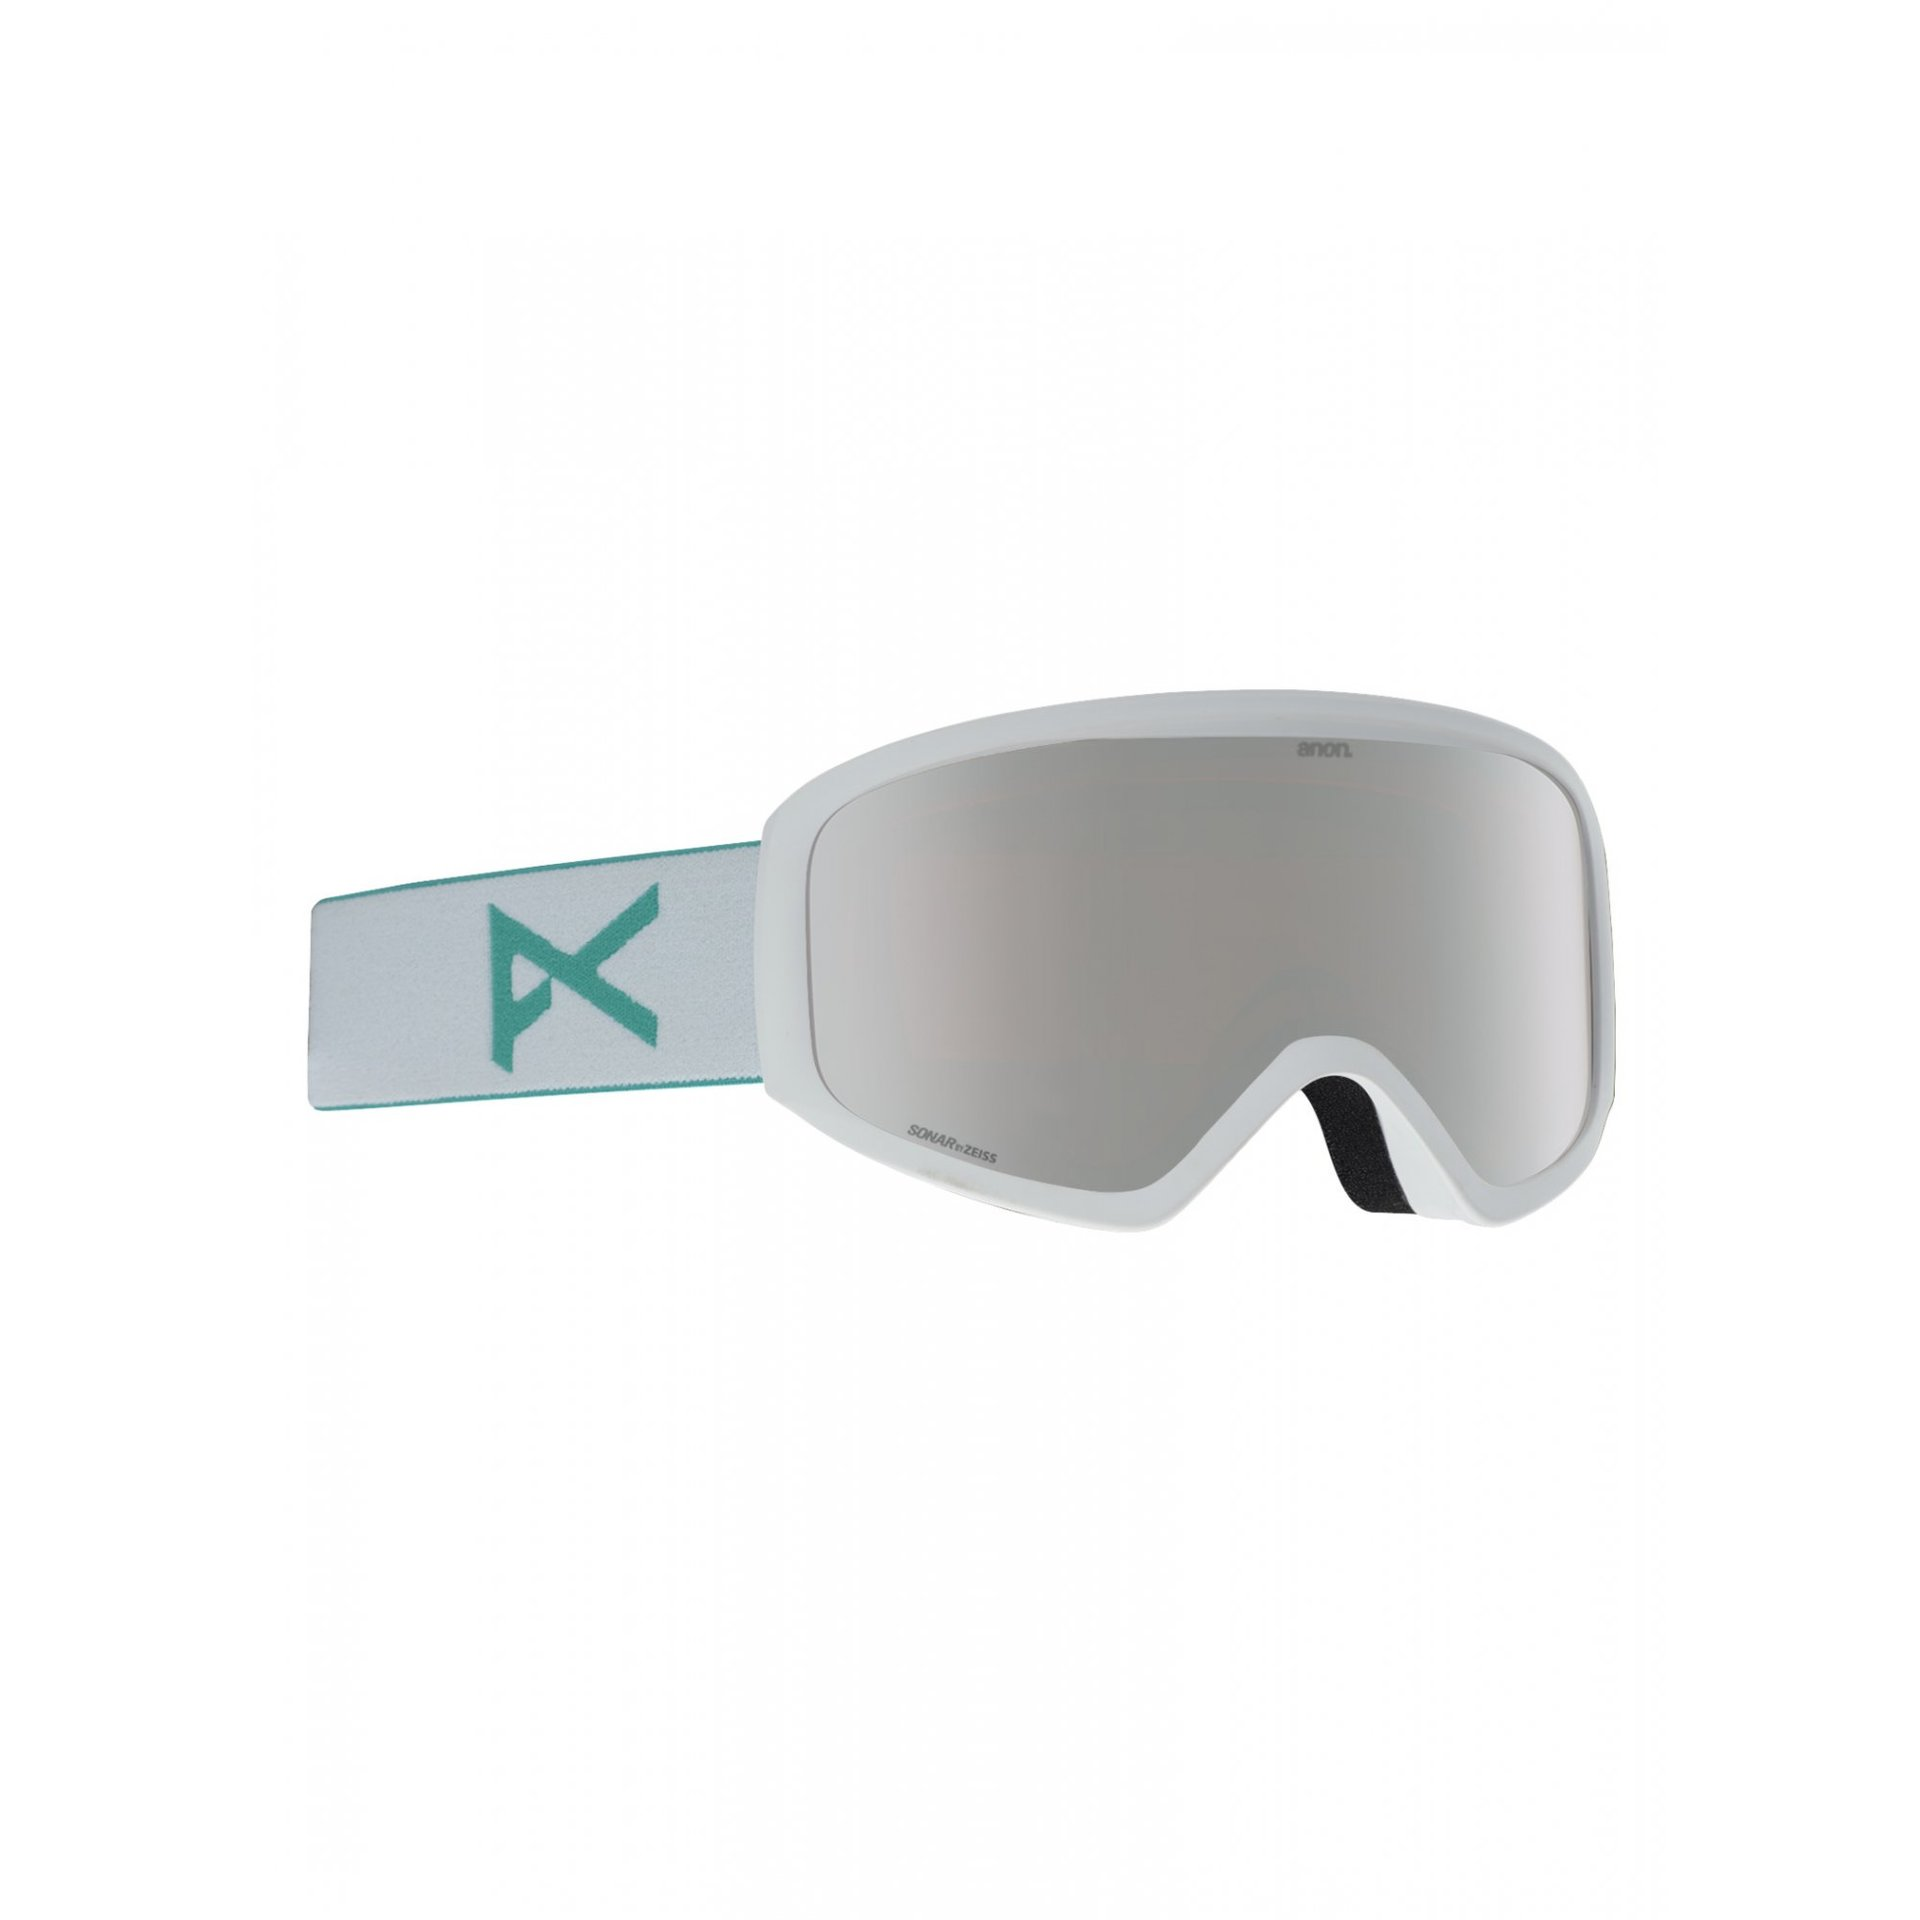 GOGLE ANON INSIGHT WHITE|SONAR SILVER 1